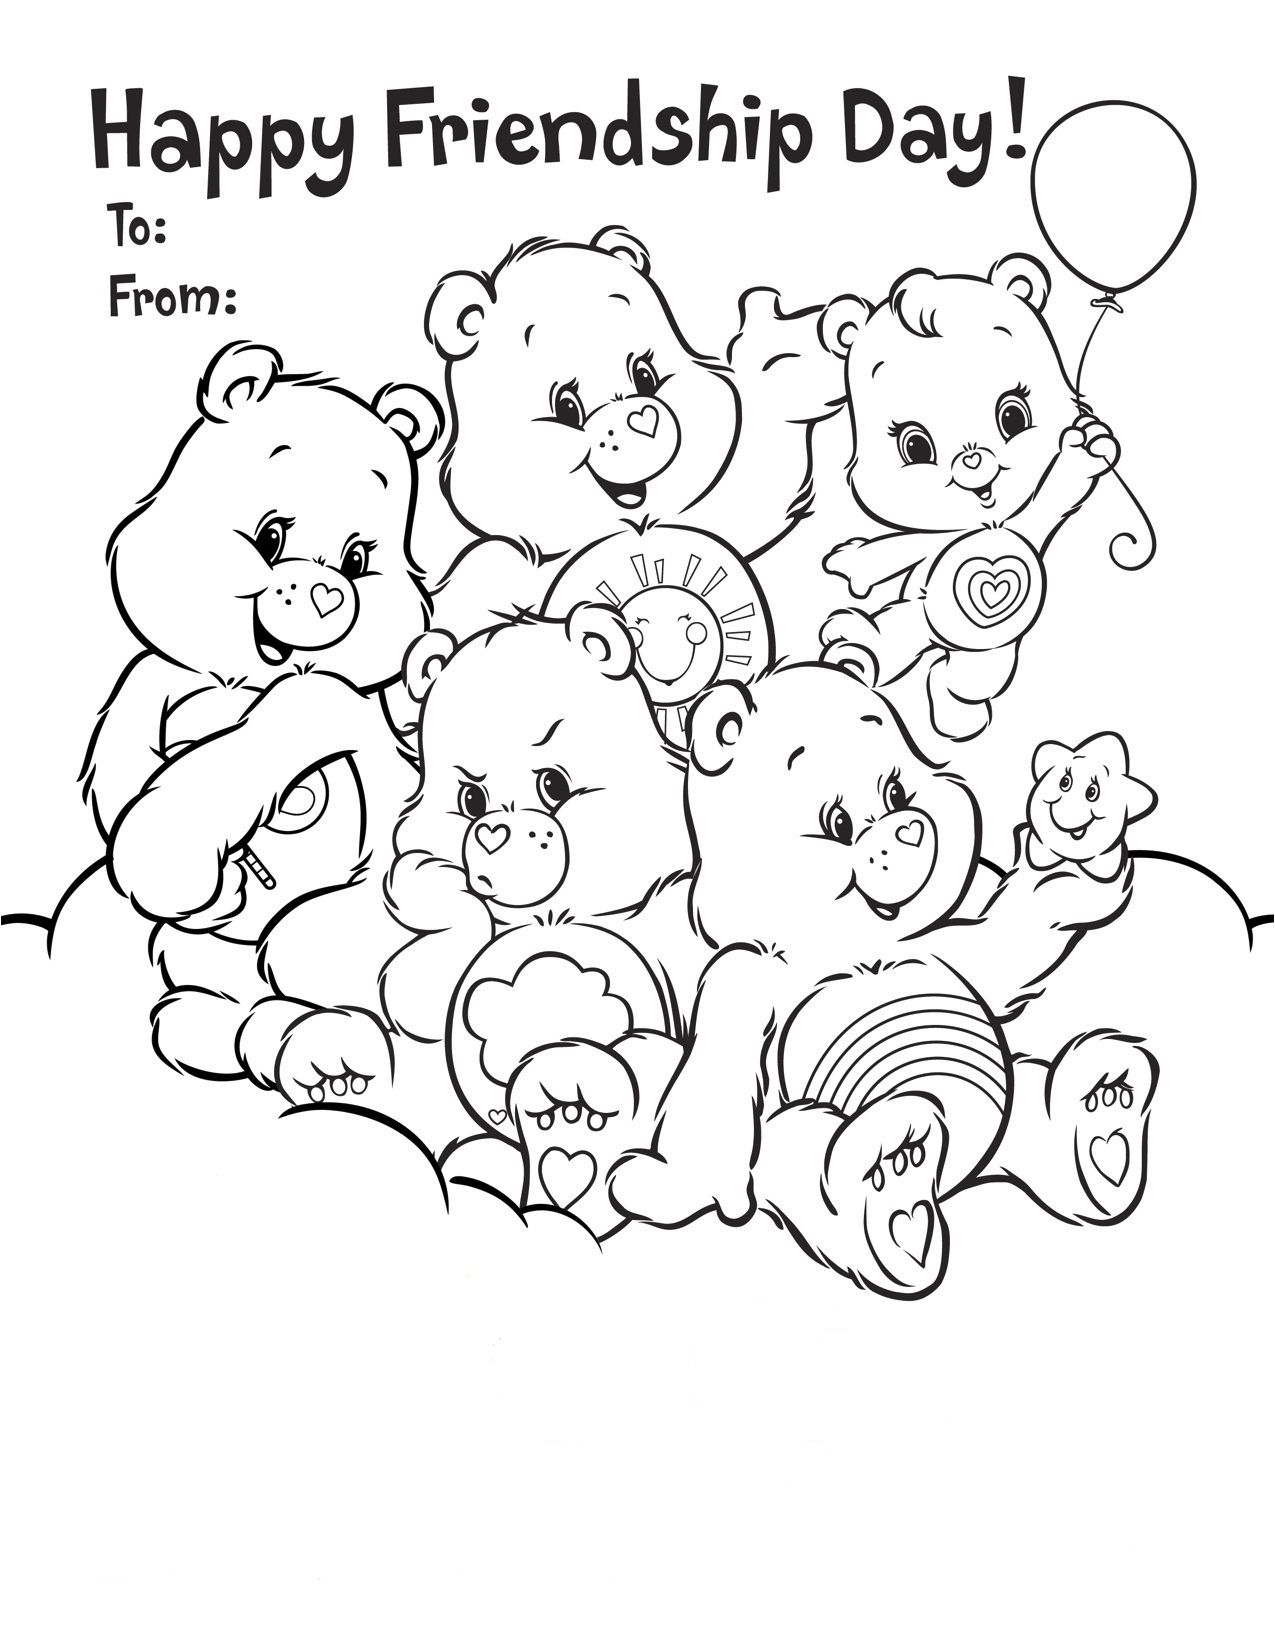 Best Happy Friendship Day Drawing, Coloring Pages for